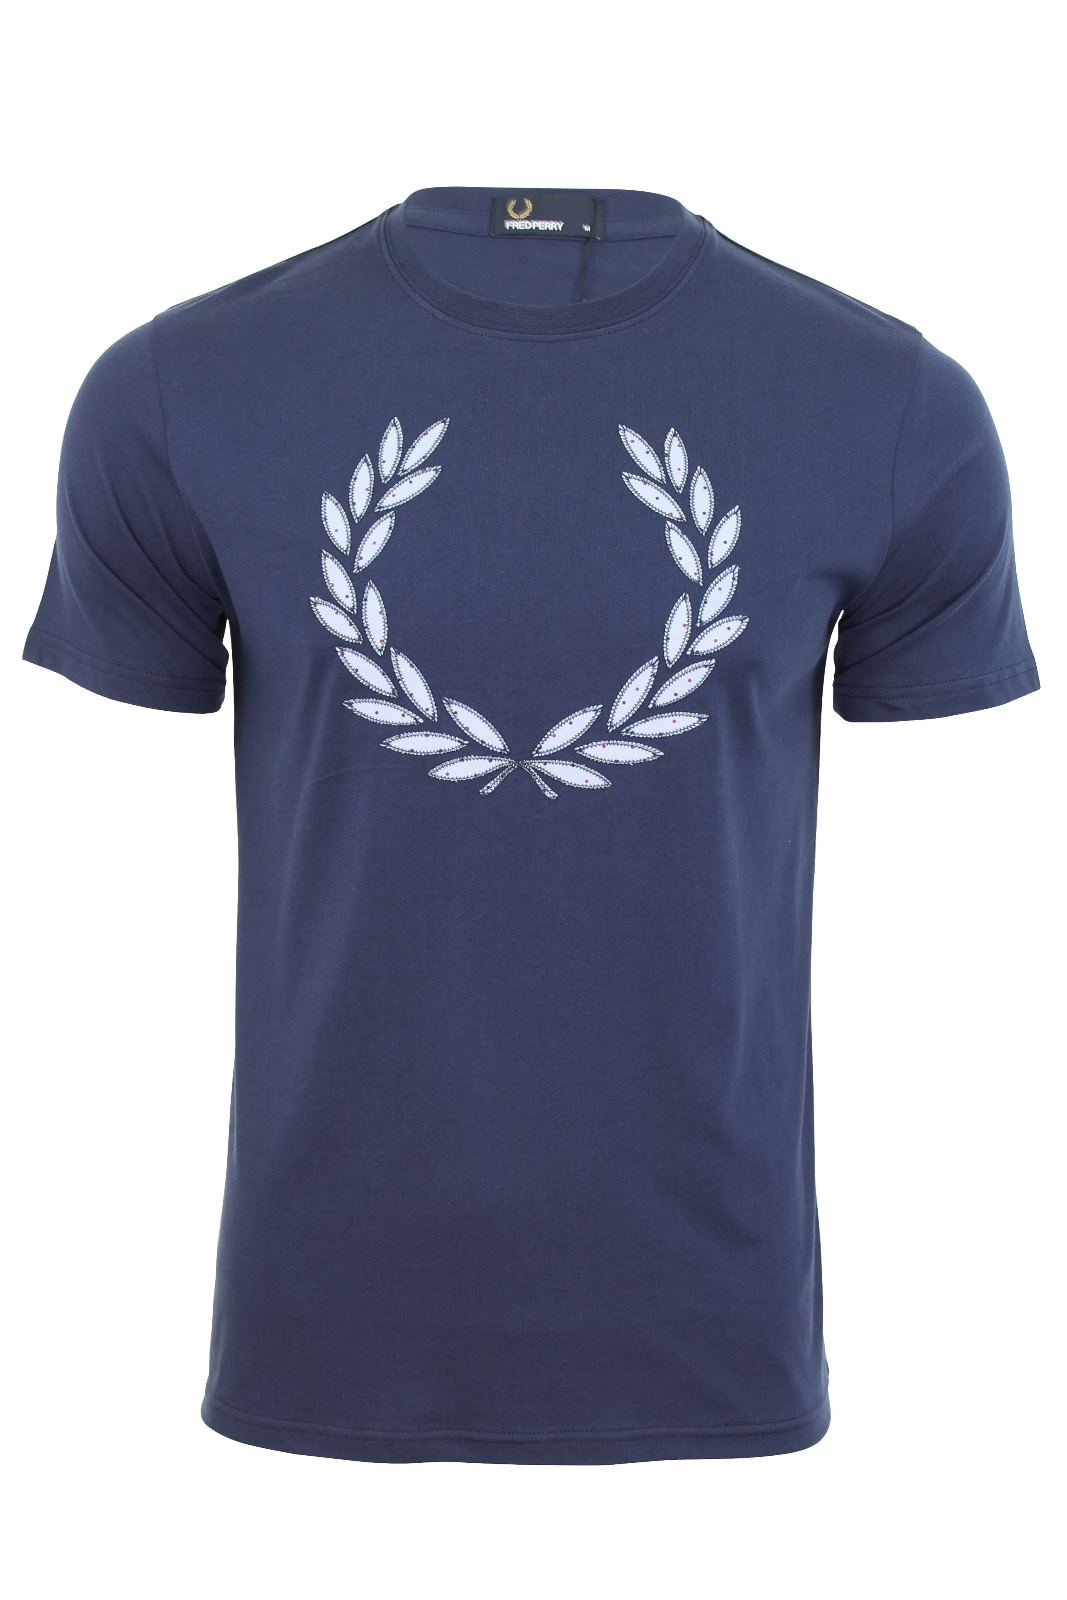 Mens fred perry t shirt vintage applique short sleeved for Von maur mens shirts